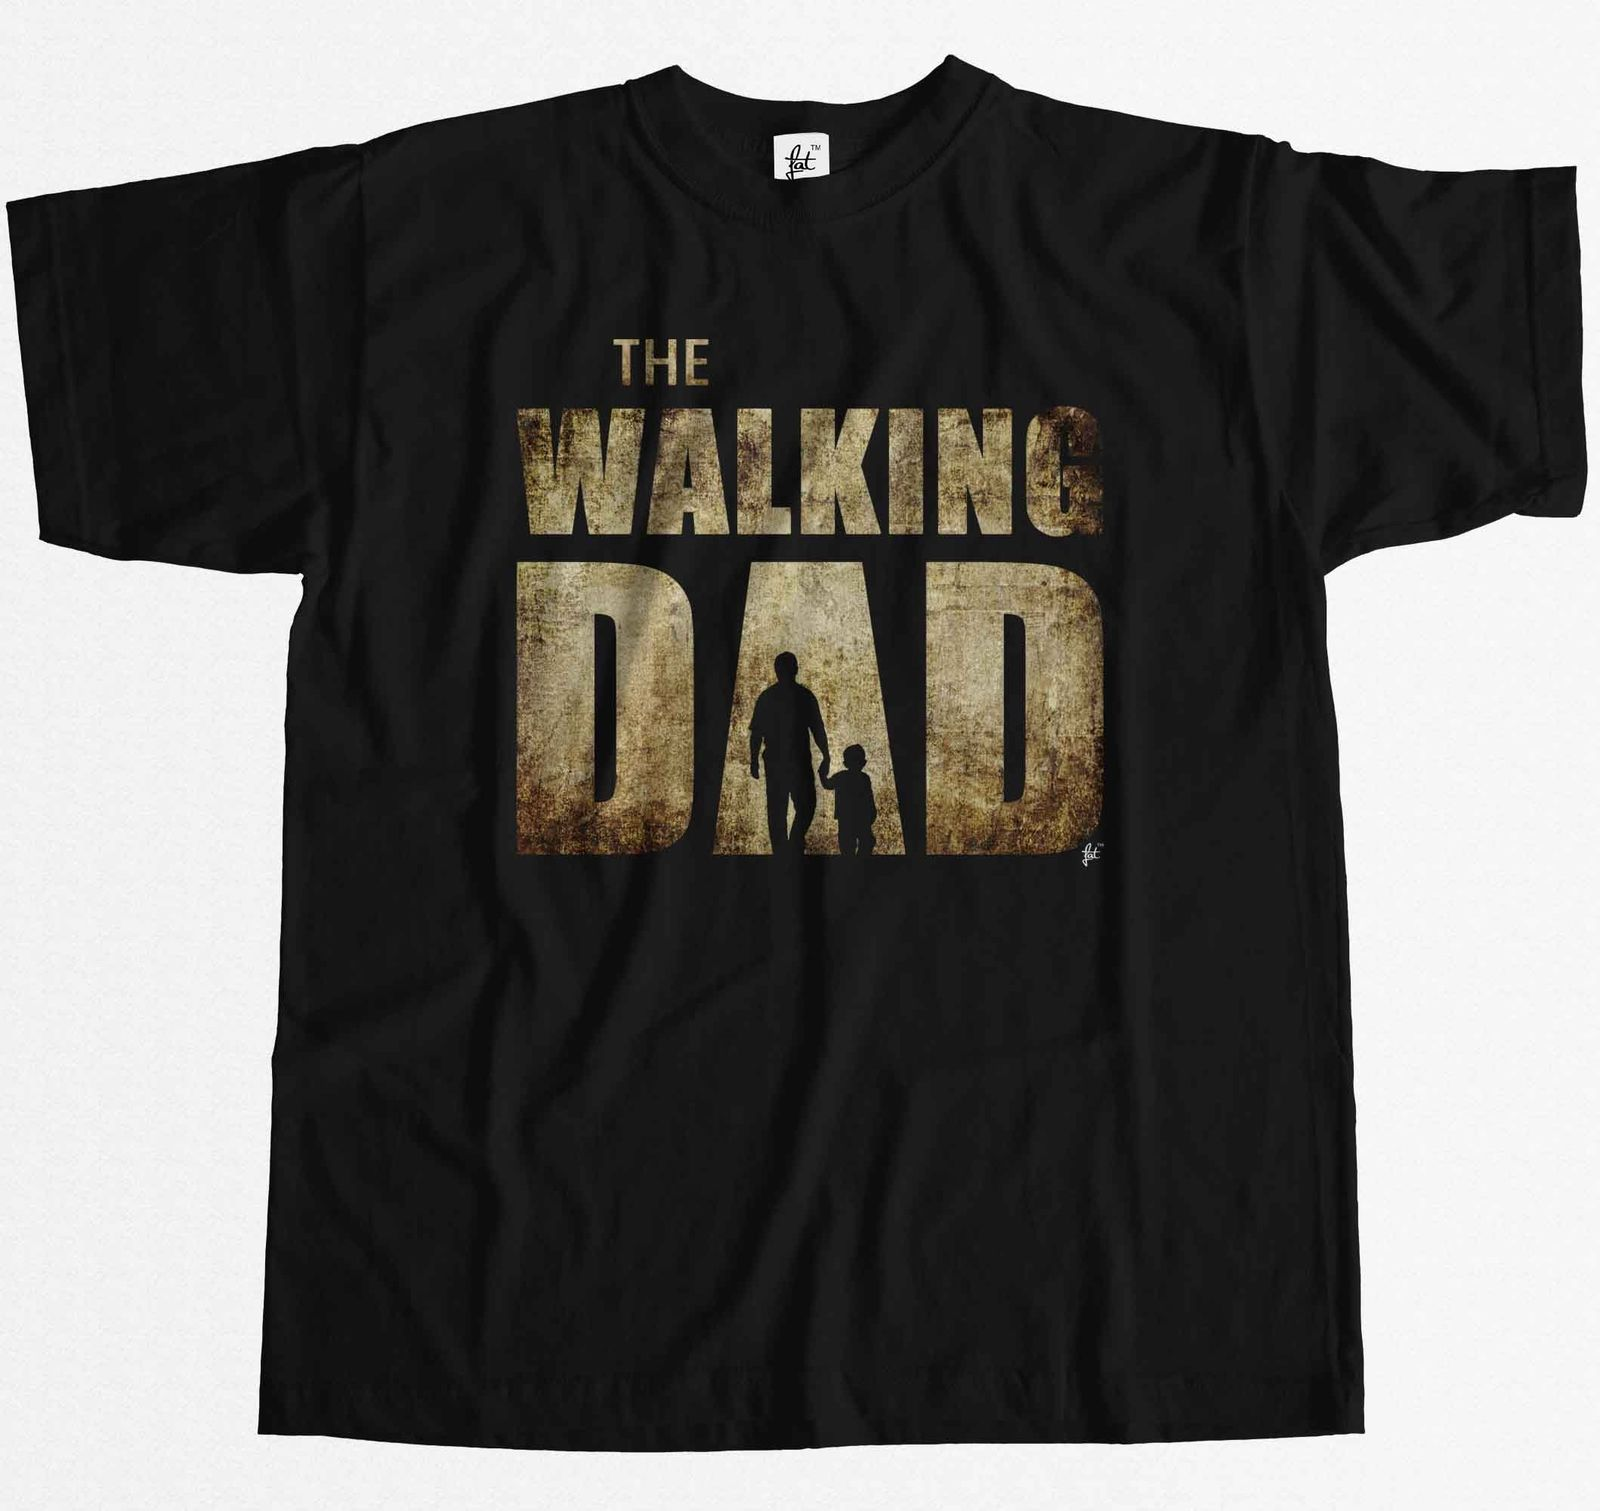 The Walking Dad Parody Father Son Fathers Day Mens T-Shirt Tops Tees Men 100% Cotton Fashion Men T Shirt Free Shipping